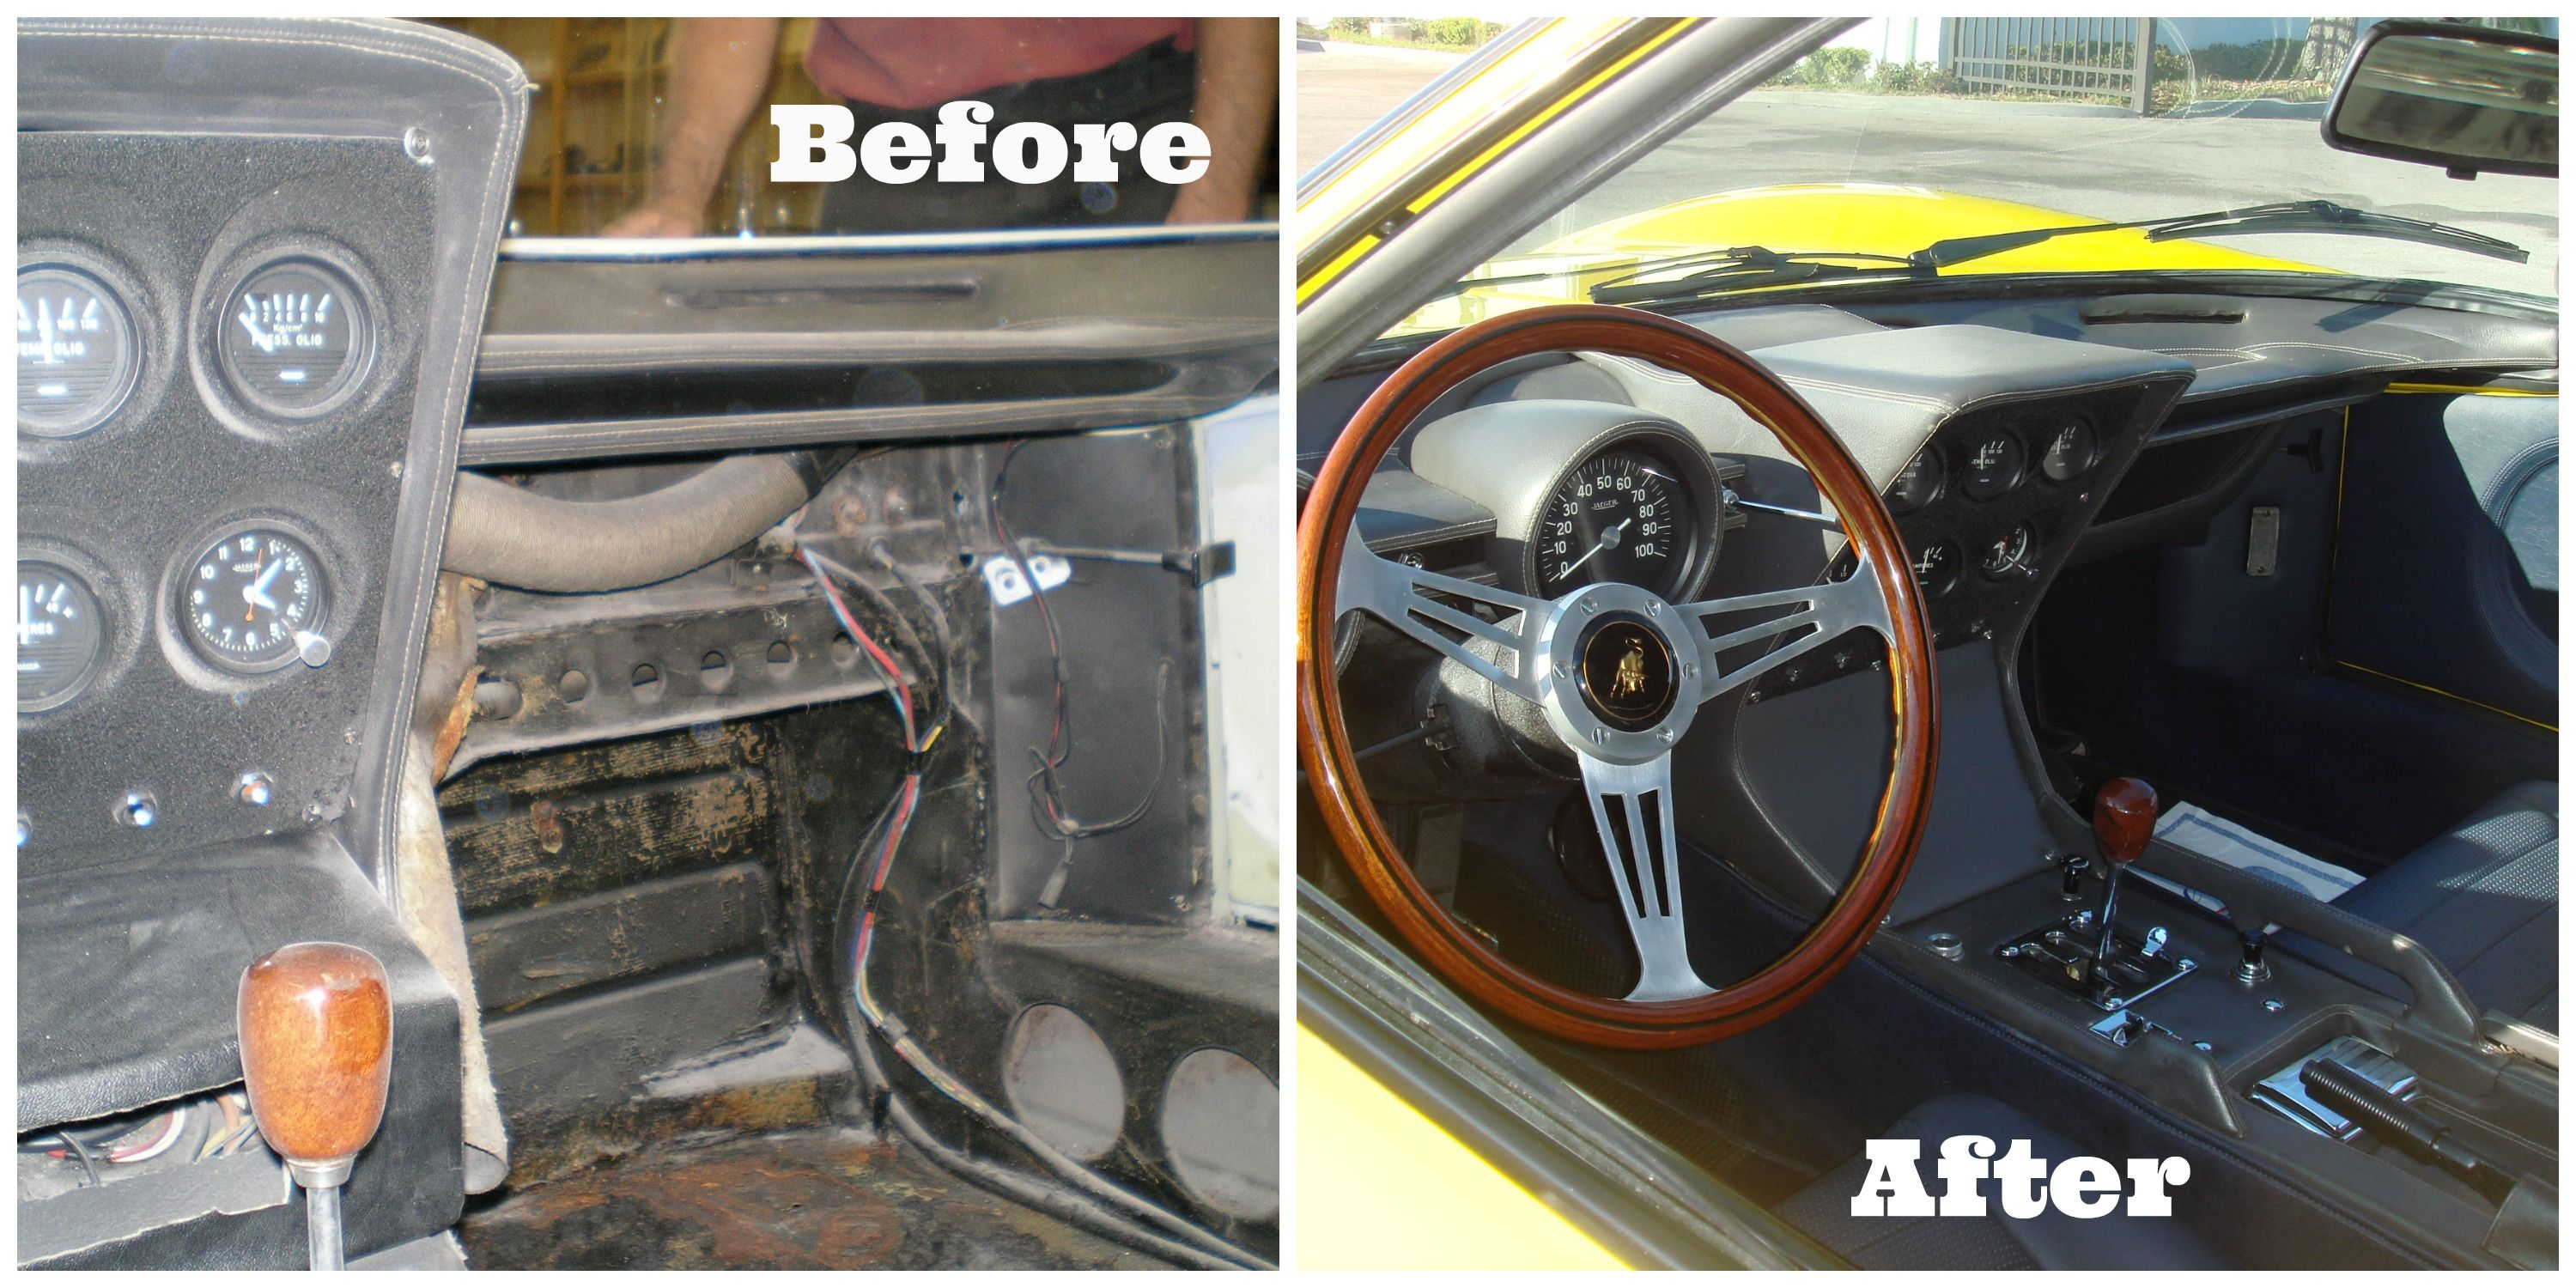 Before and After our Body Shop work